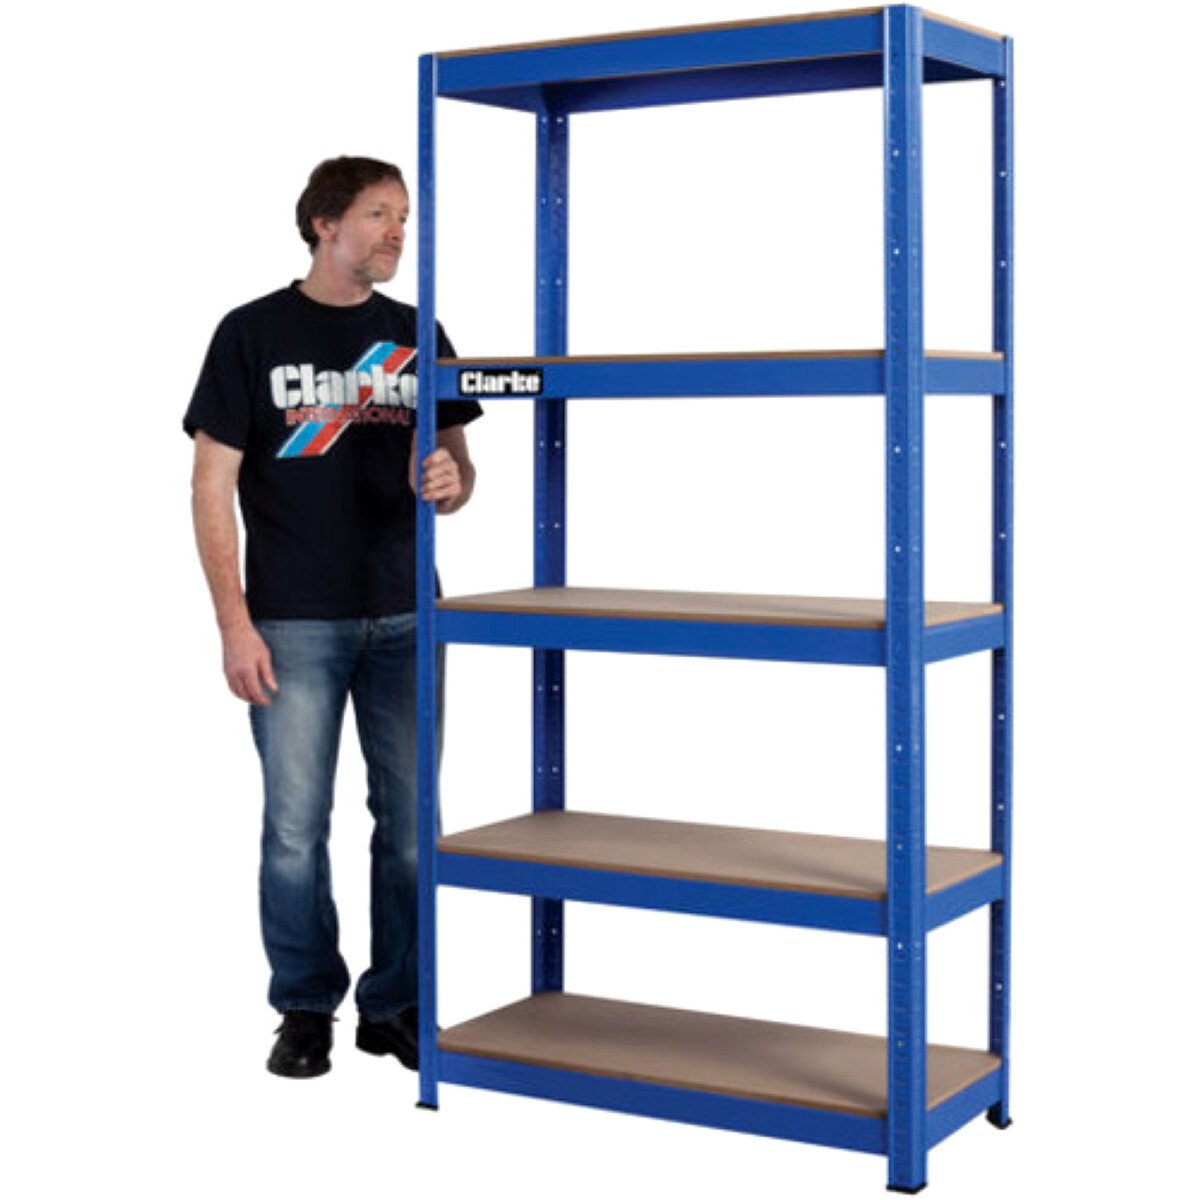 Clarke CSM5350BP Universal Bolt-less Shelving Unit/Bench 350kg 6600810